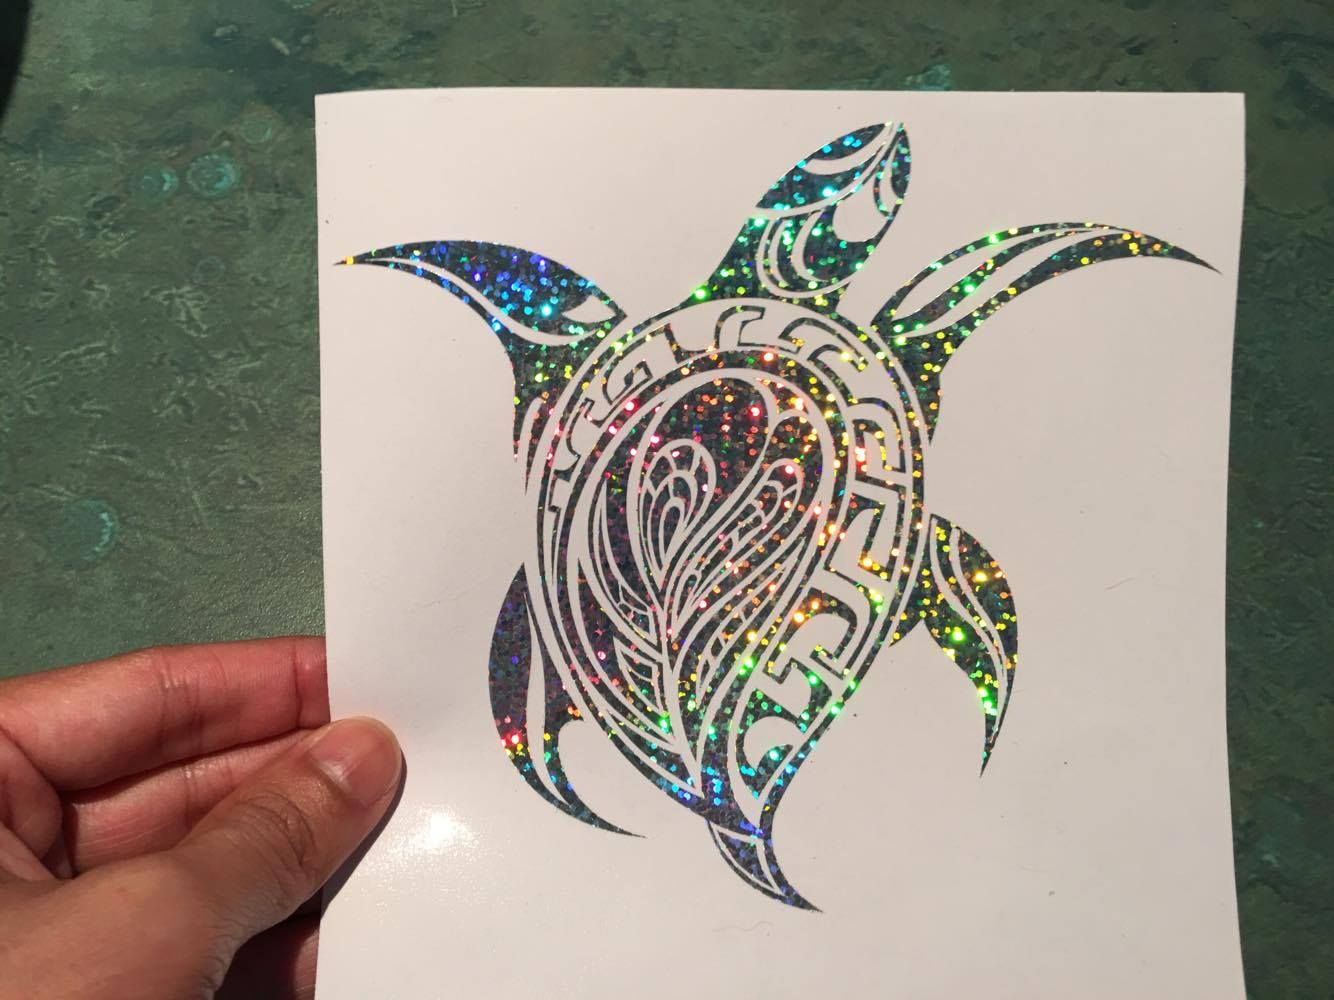 Sea Turtle Tribal Silver Glitter Holographic Vinyl Decal Sticker - Vinyl stickers for car windows